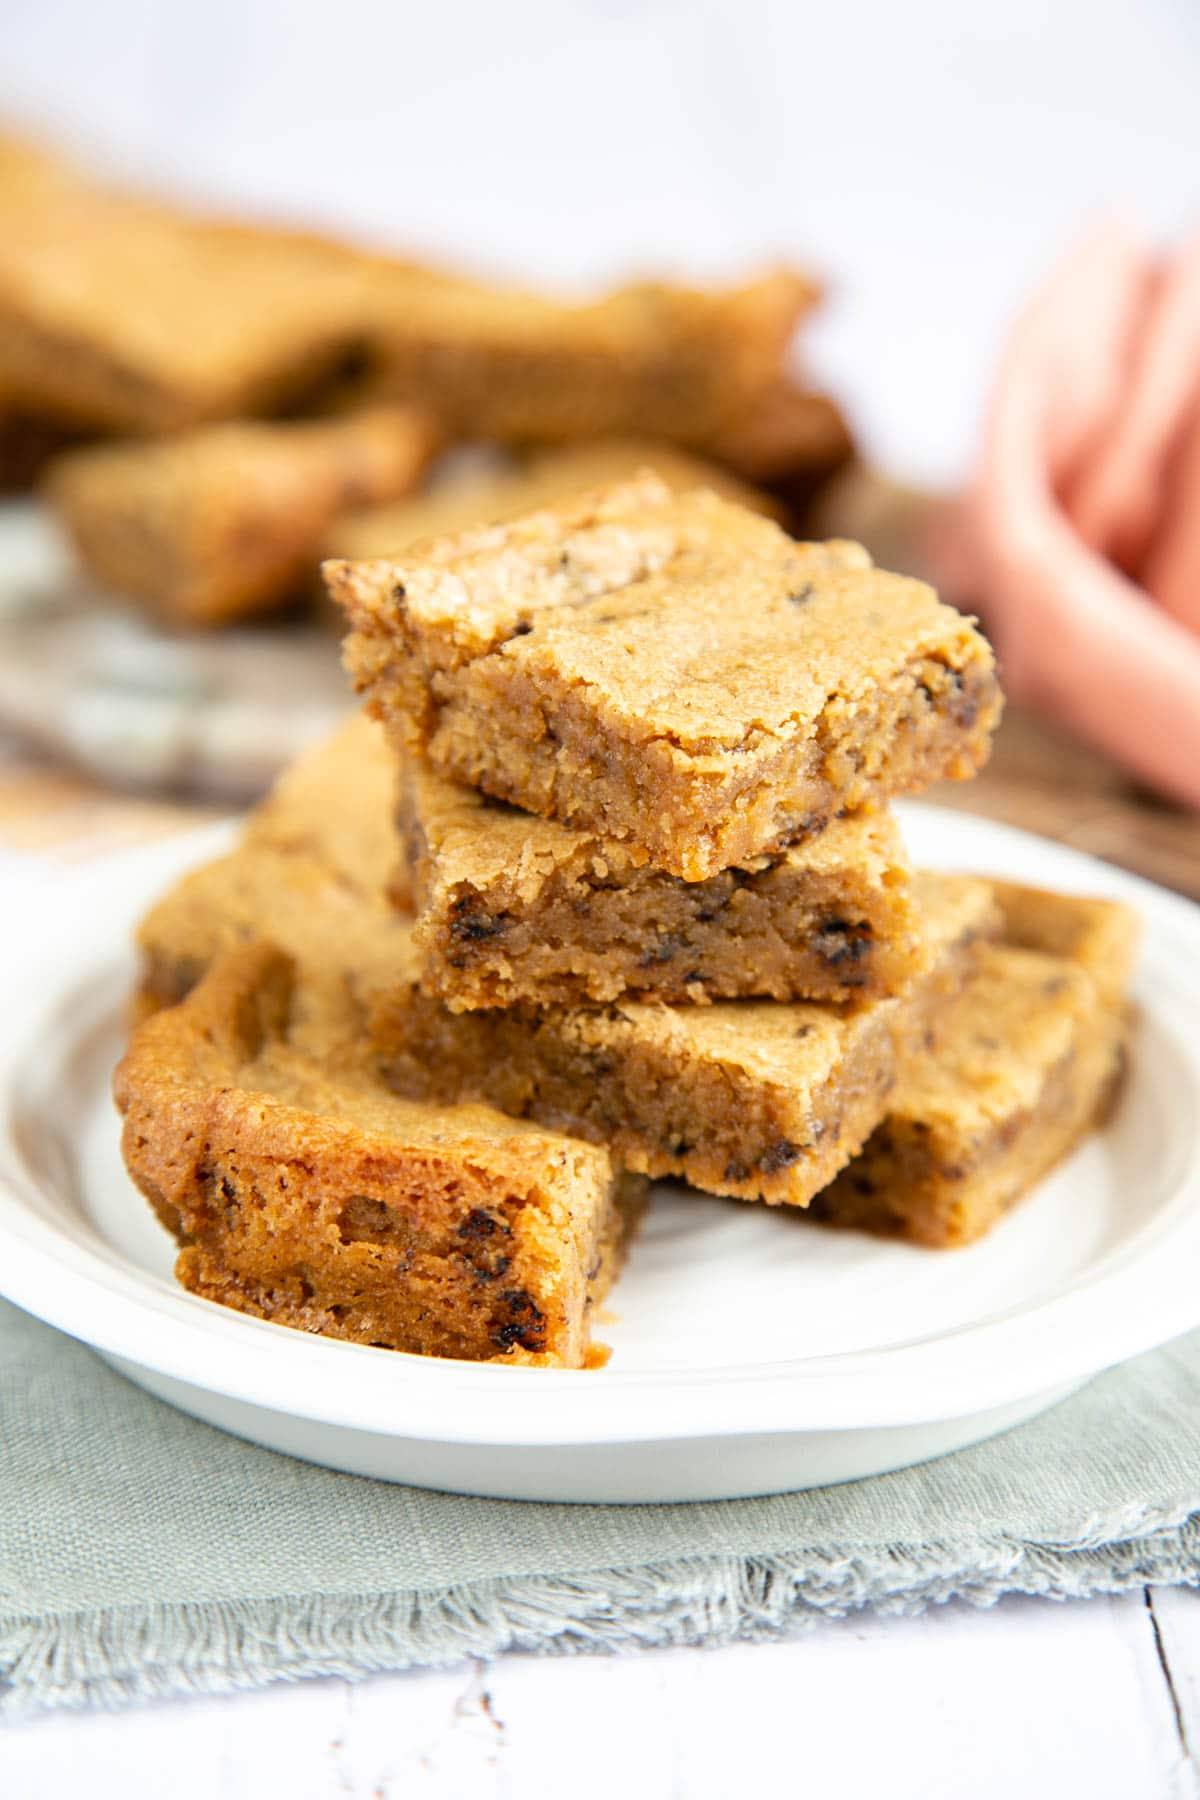 A stack of delicious, rich, crumbly coffee blondies on a small side plate. More blondies are in the background.